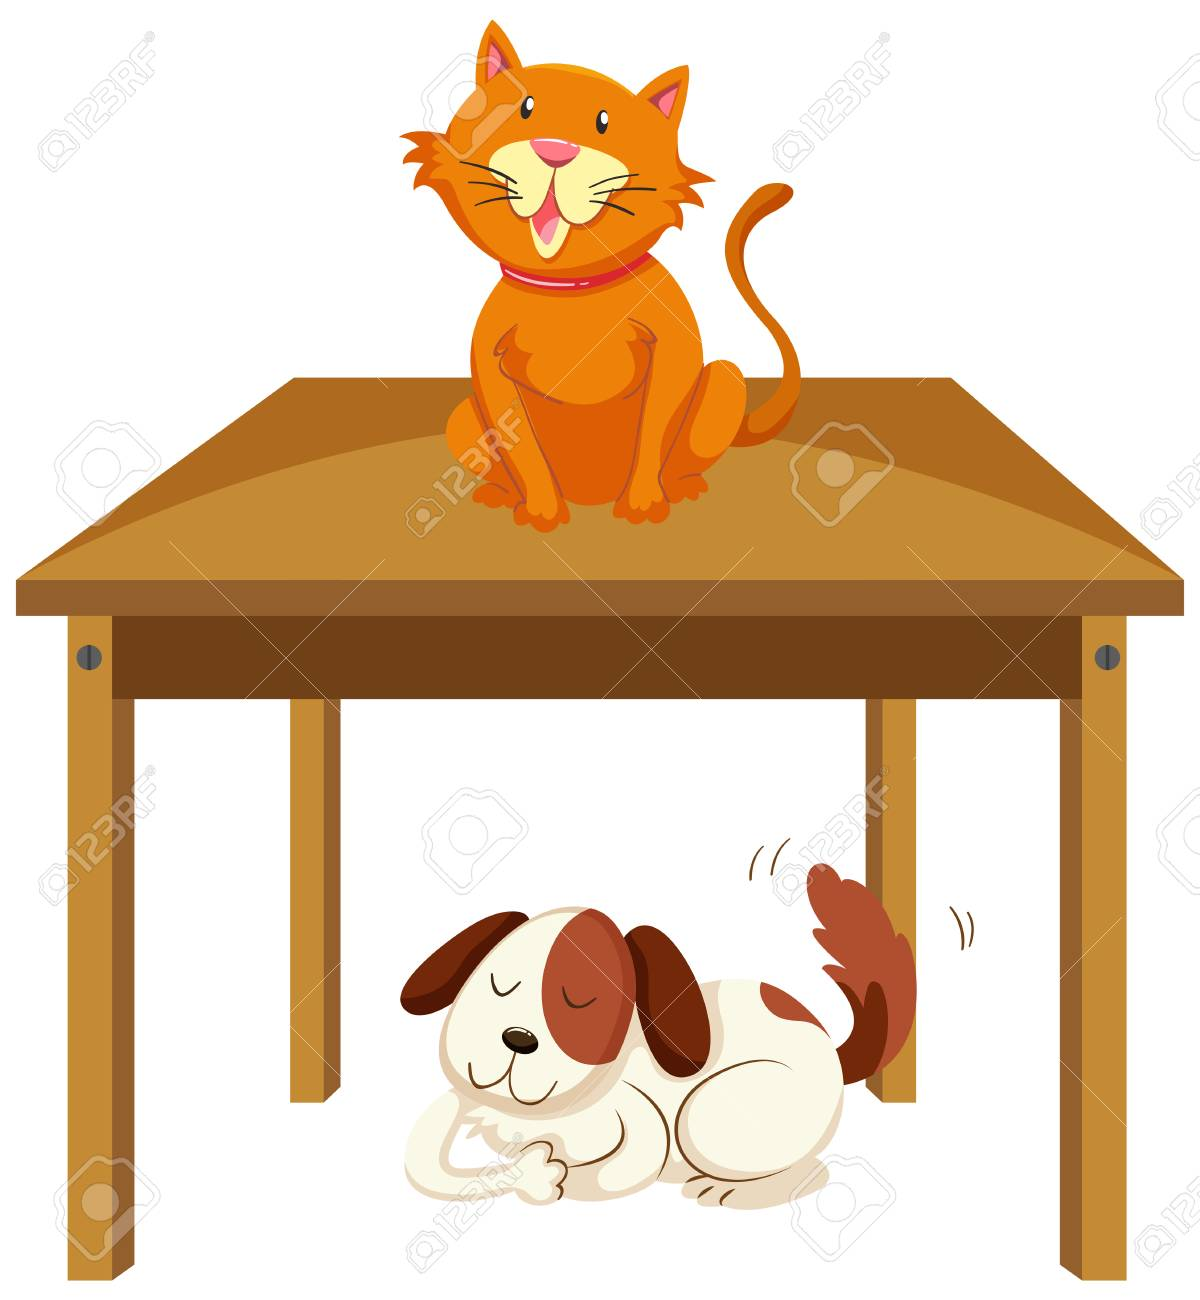 Cat on the table and dog under the table illustration.